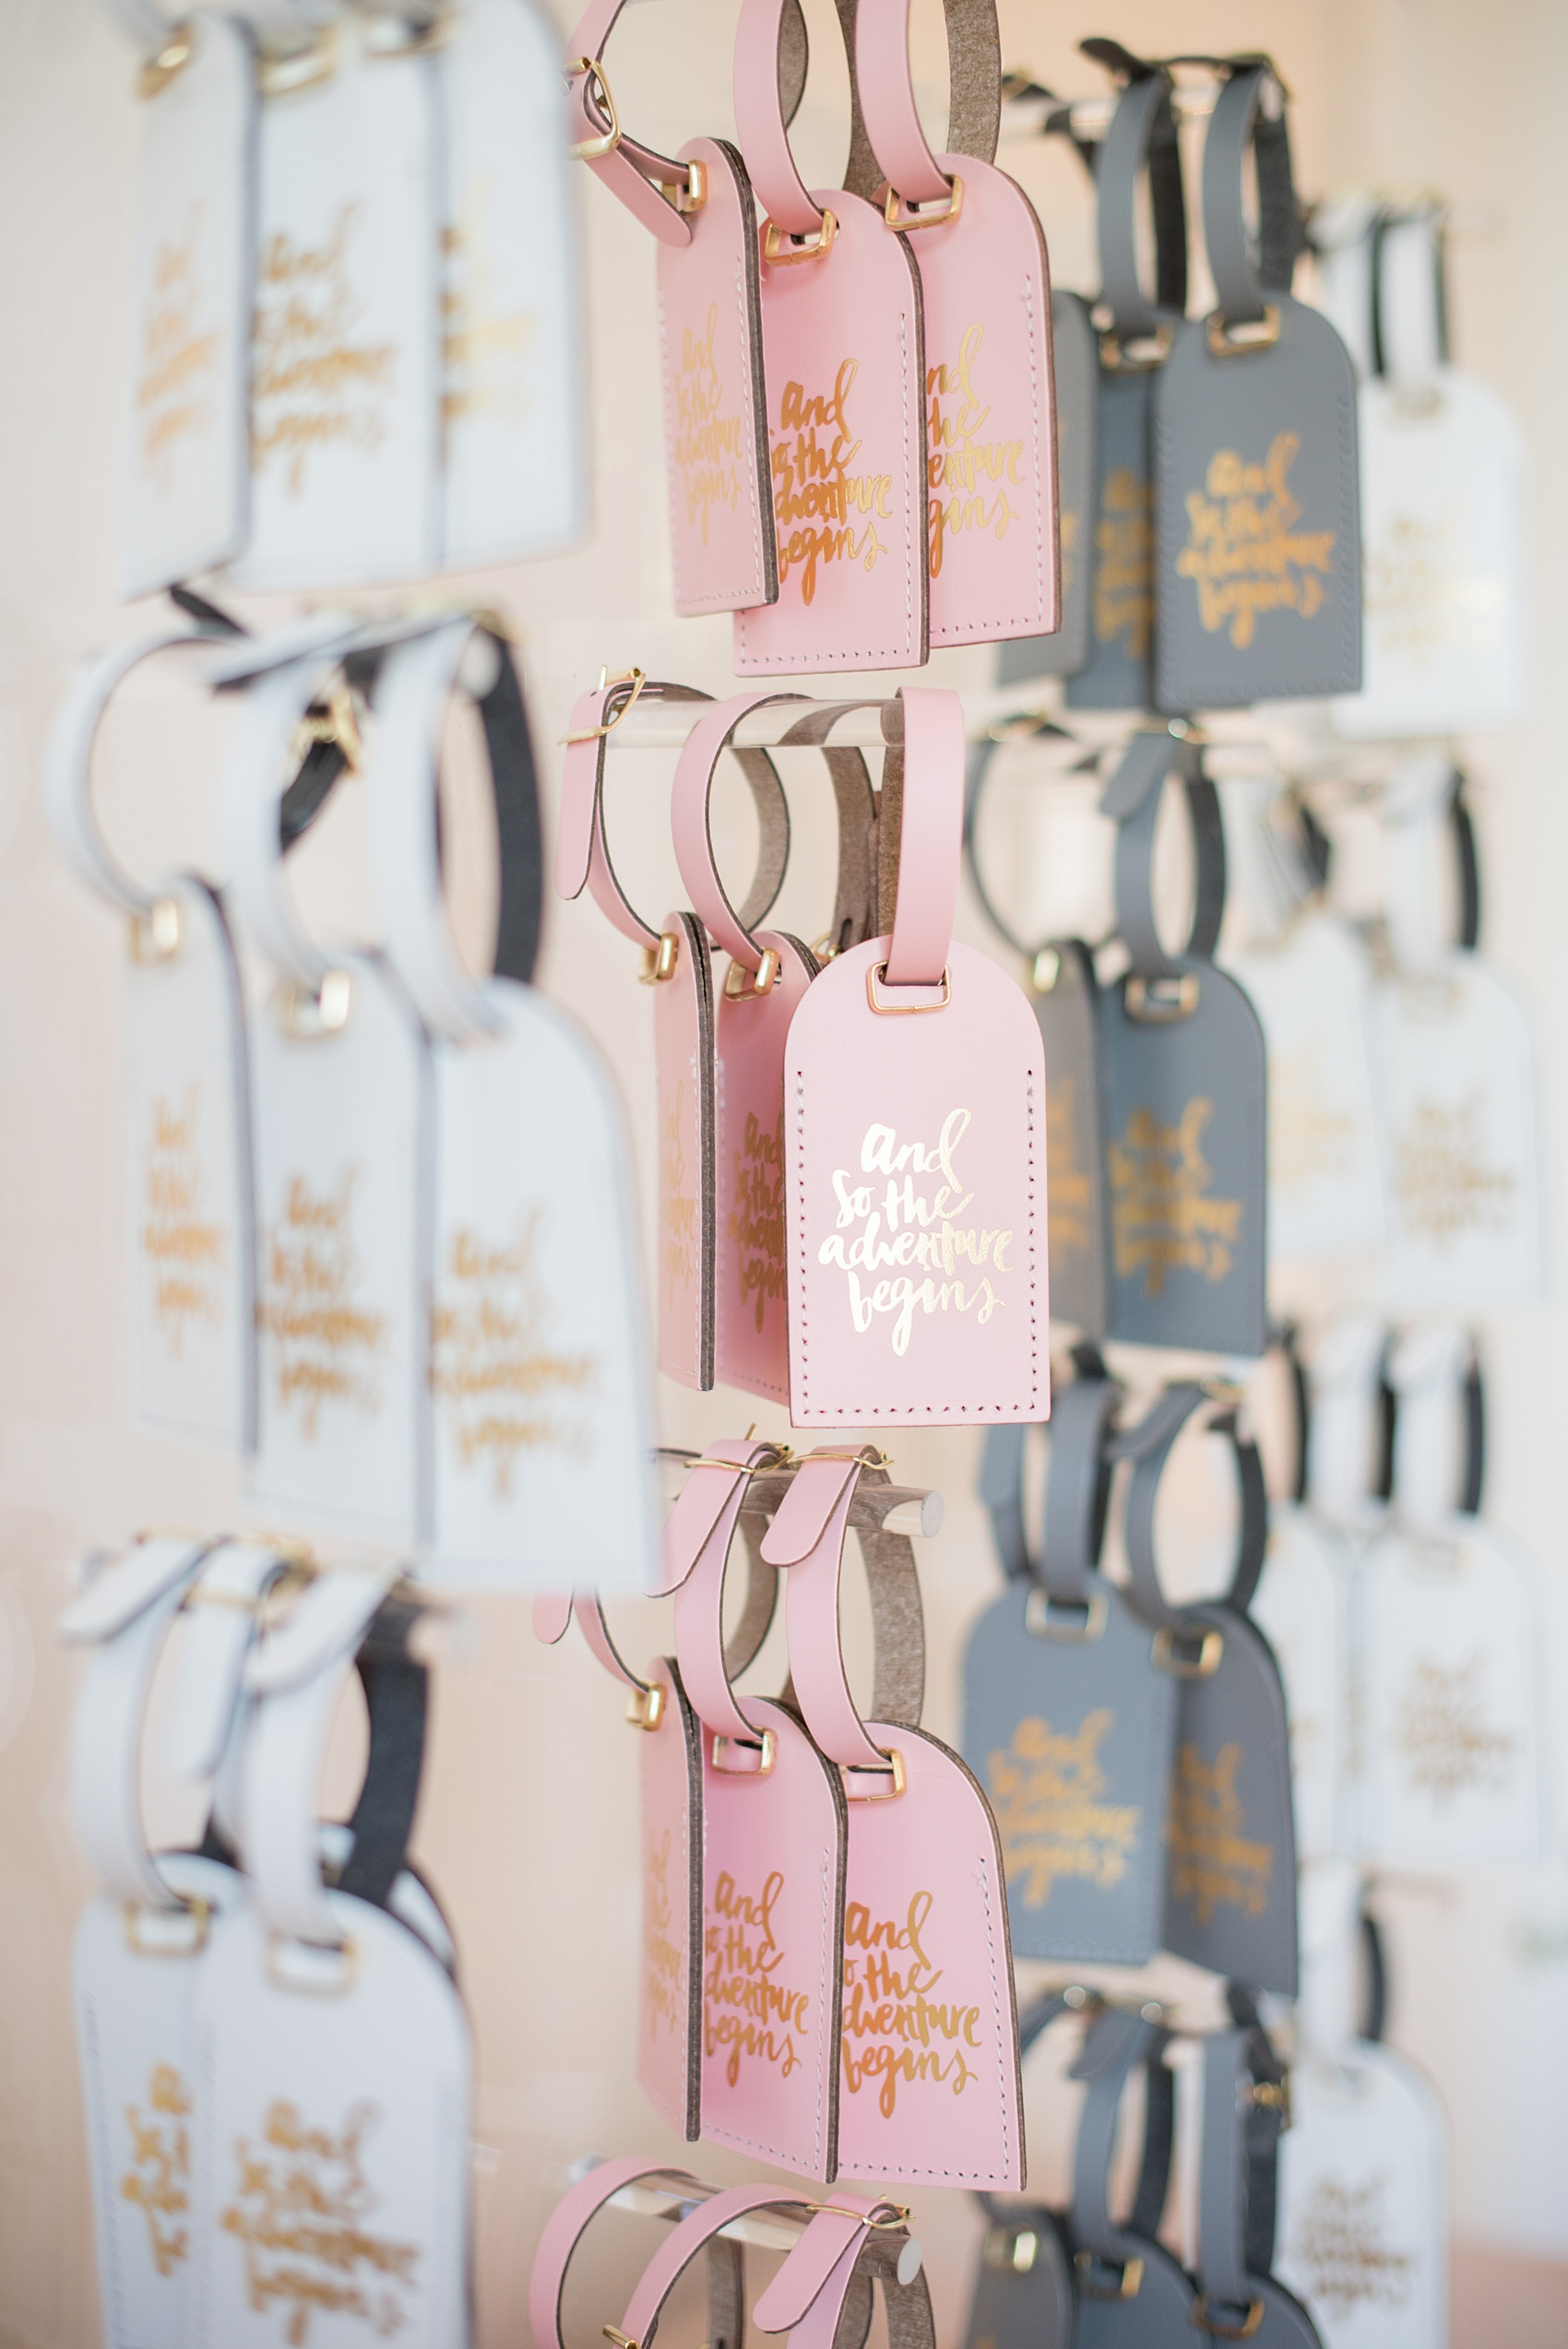 Mikkel Paige Photography pictures from a wedding at Merrimon-Wynne House in Raleigh, NC. Photo of the creative, unique escort cards. Guests found their tables on luggage tags on an acrylic board.